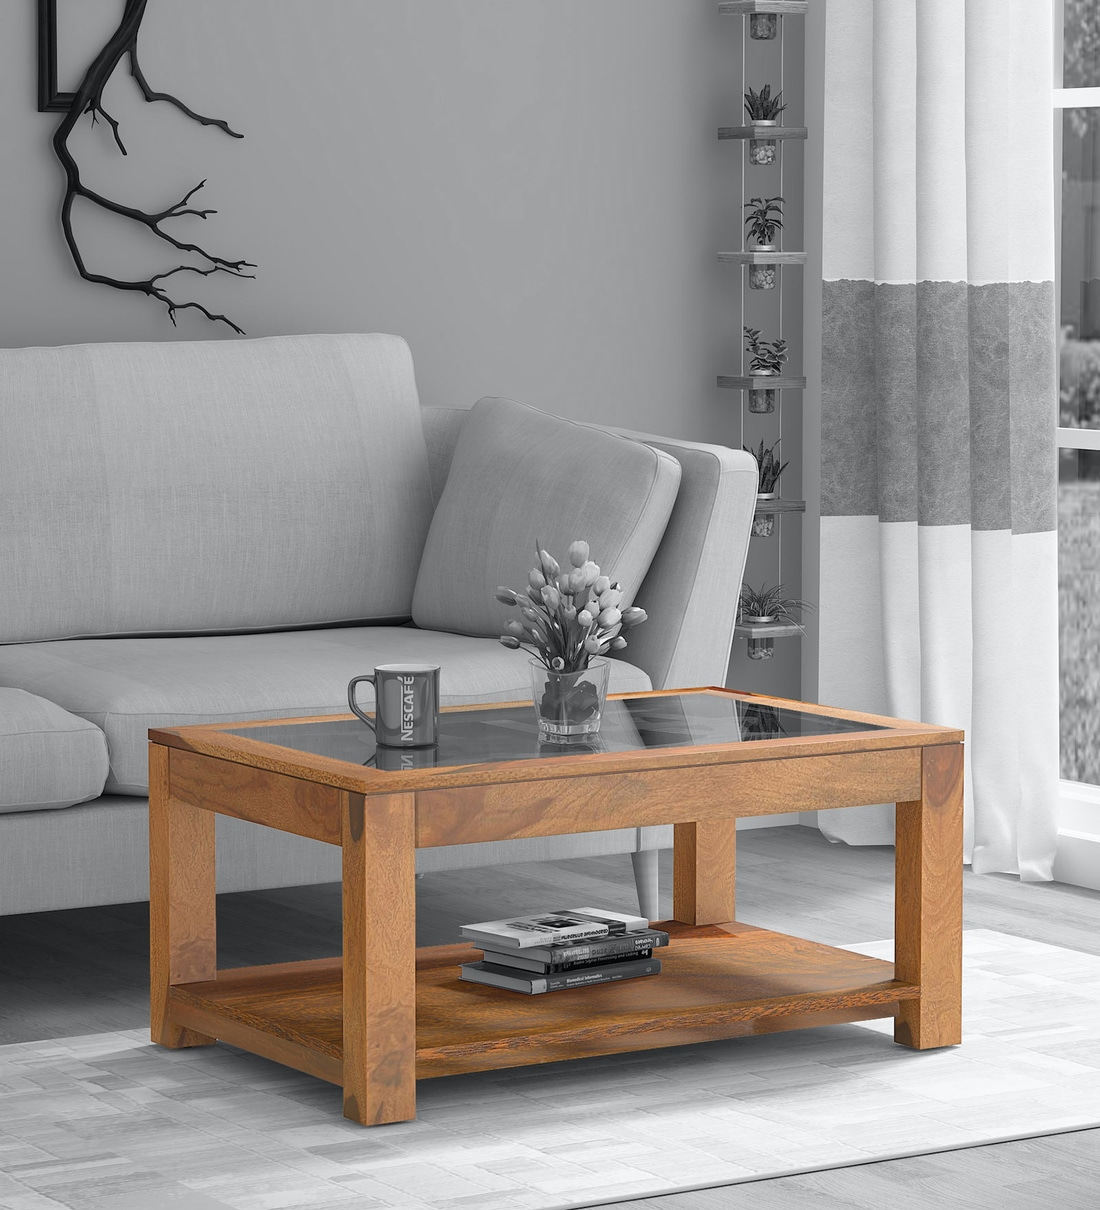 Buy Mckenzy Solid Wood Coffee Table With Glass Top In Rustic Teak Finish Woodsworth By Pepperfry Online Contemporary Rectangular Coffee Tables Tables Furniture Pepperfry Product